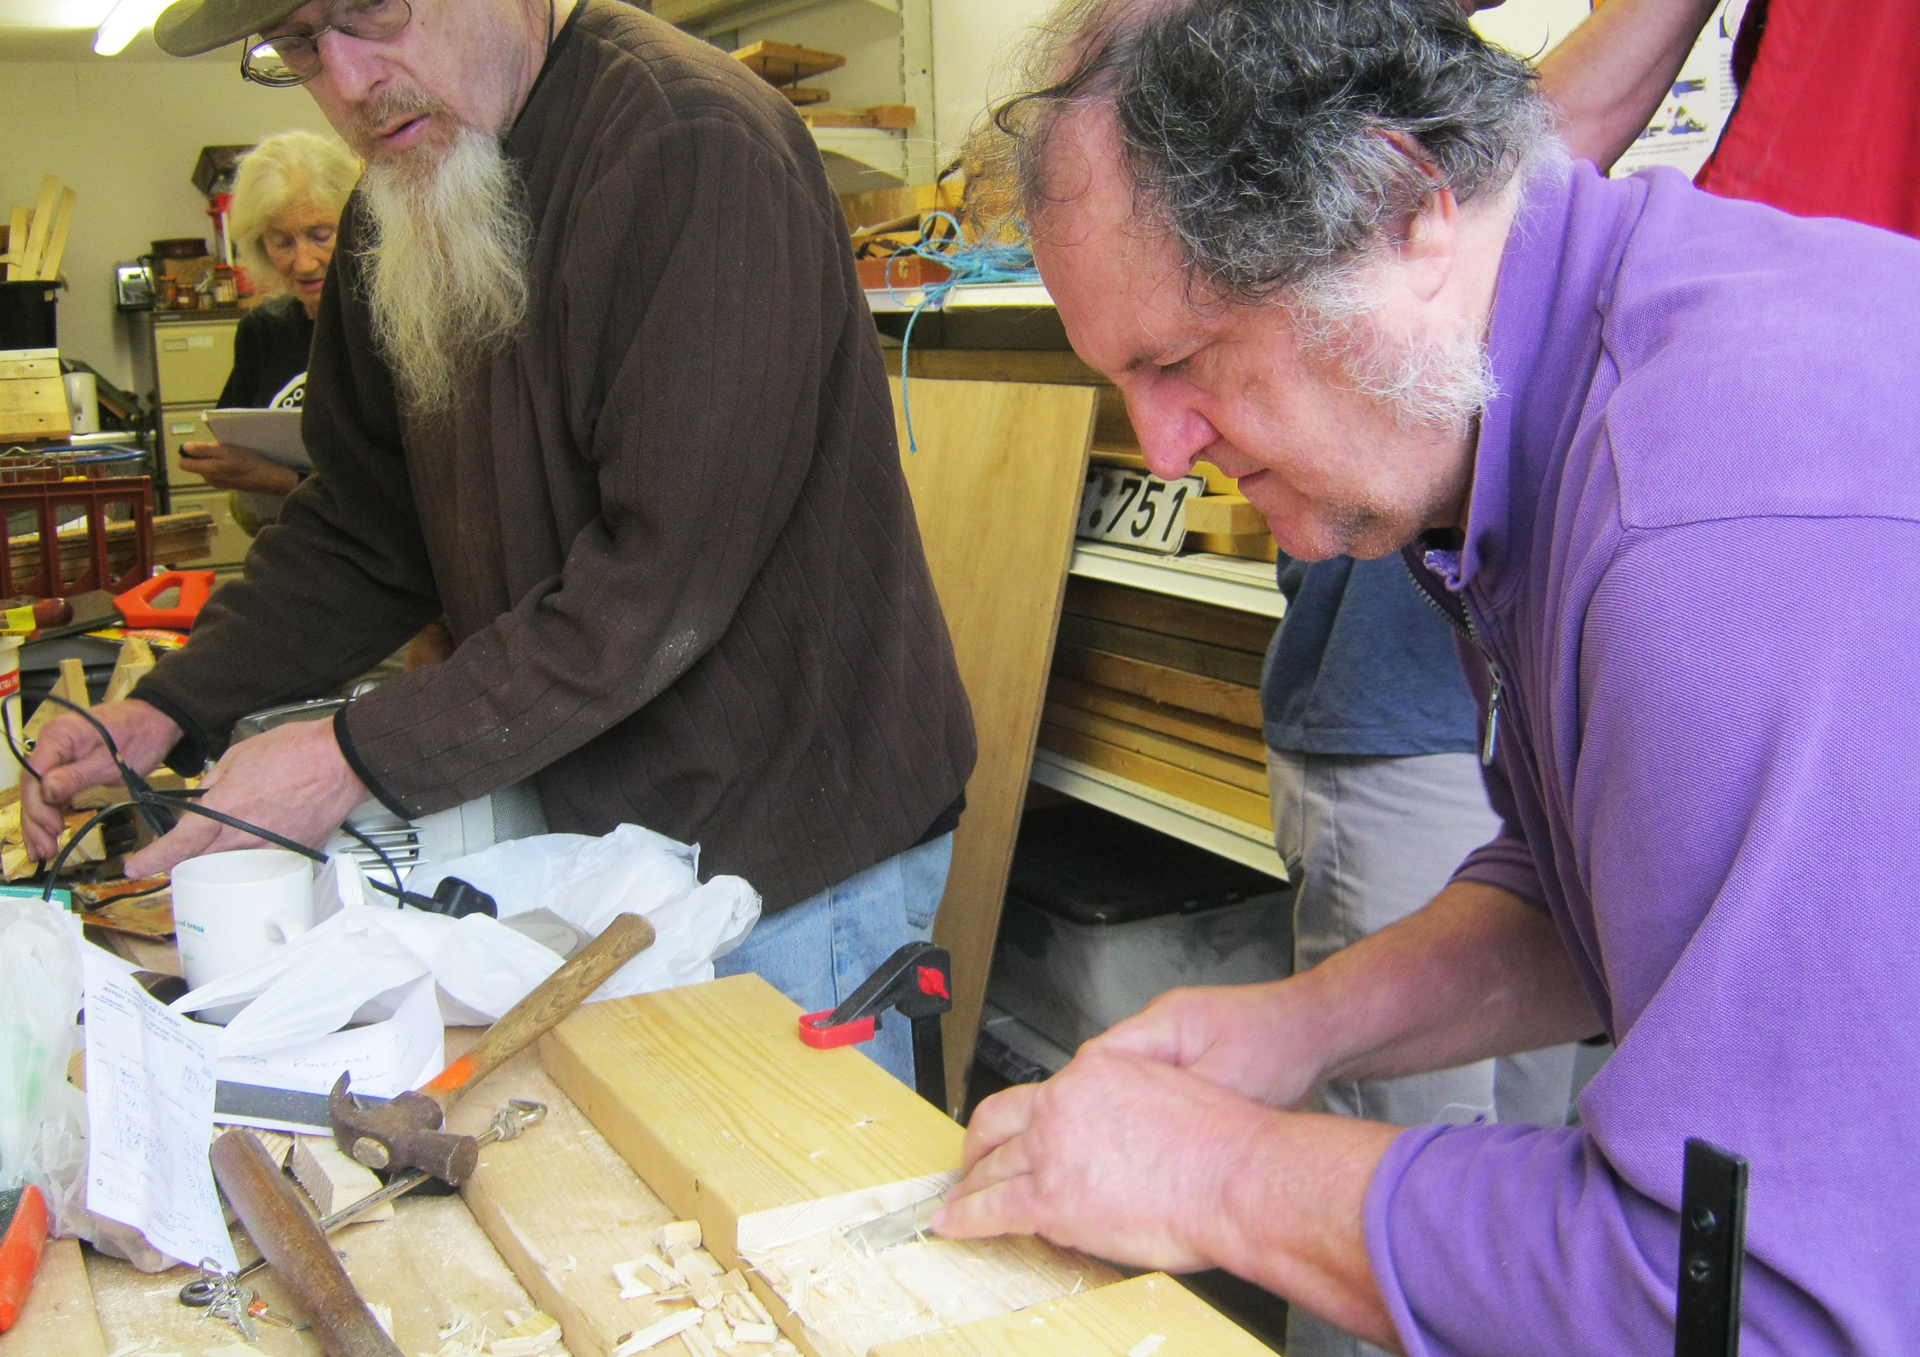 Chiseling - Men in Sheds workshop